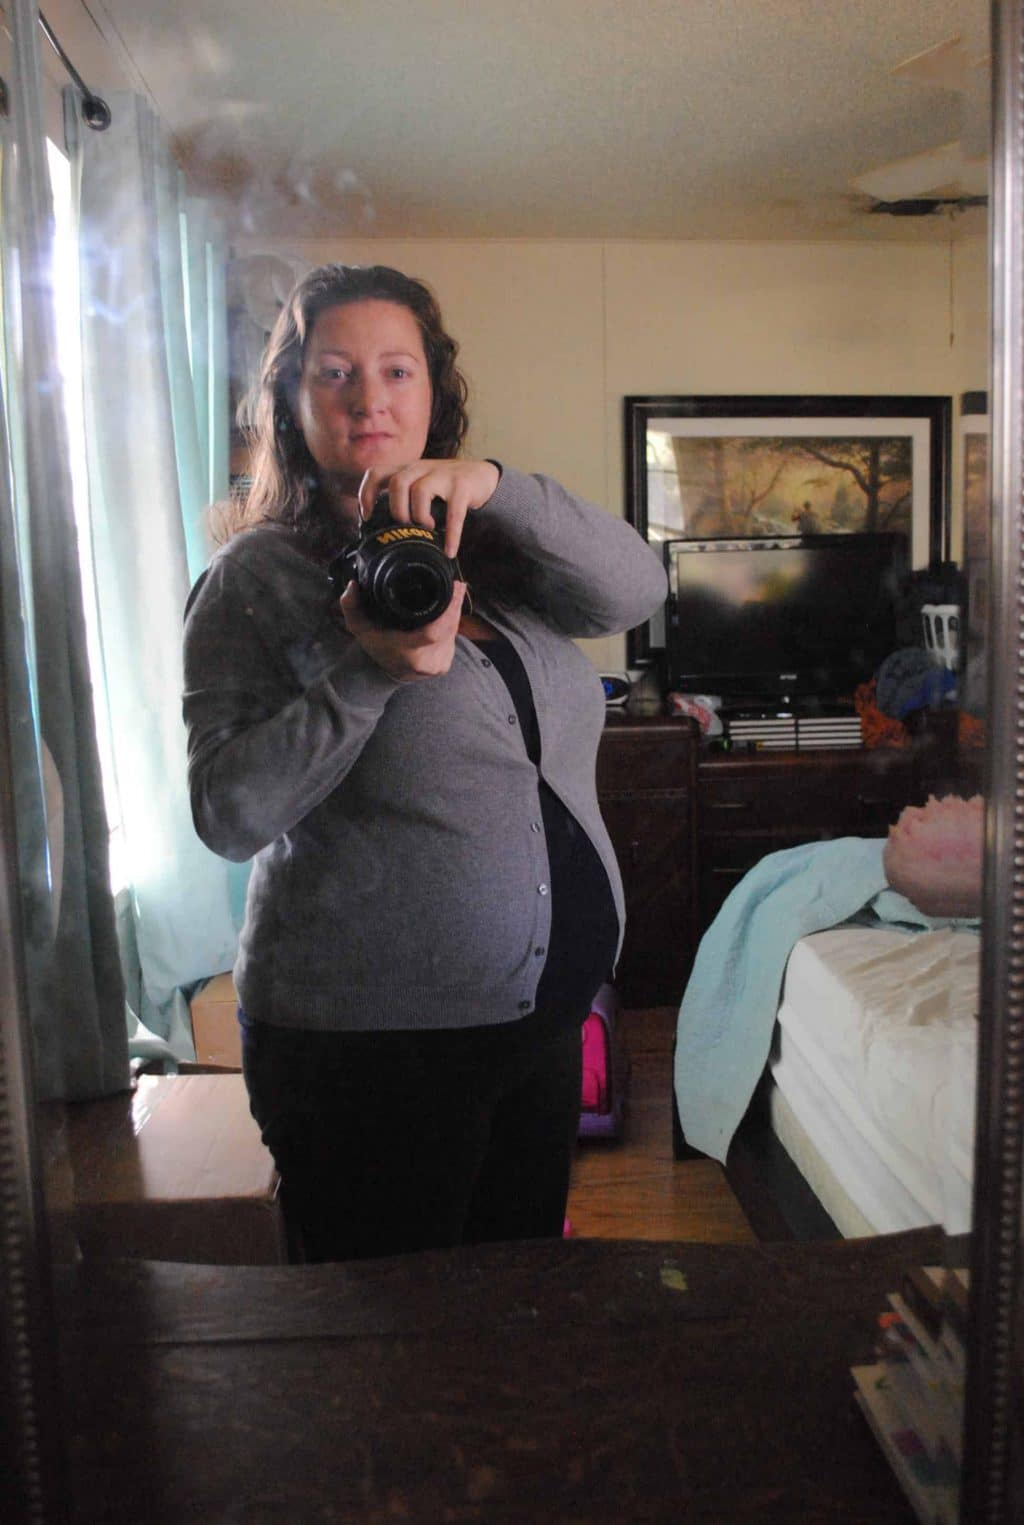 Me At 34 Weeks #expecting #baby #pregnancy #thirdtrimester